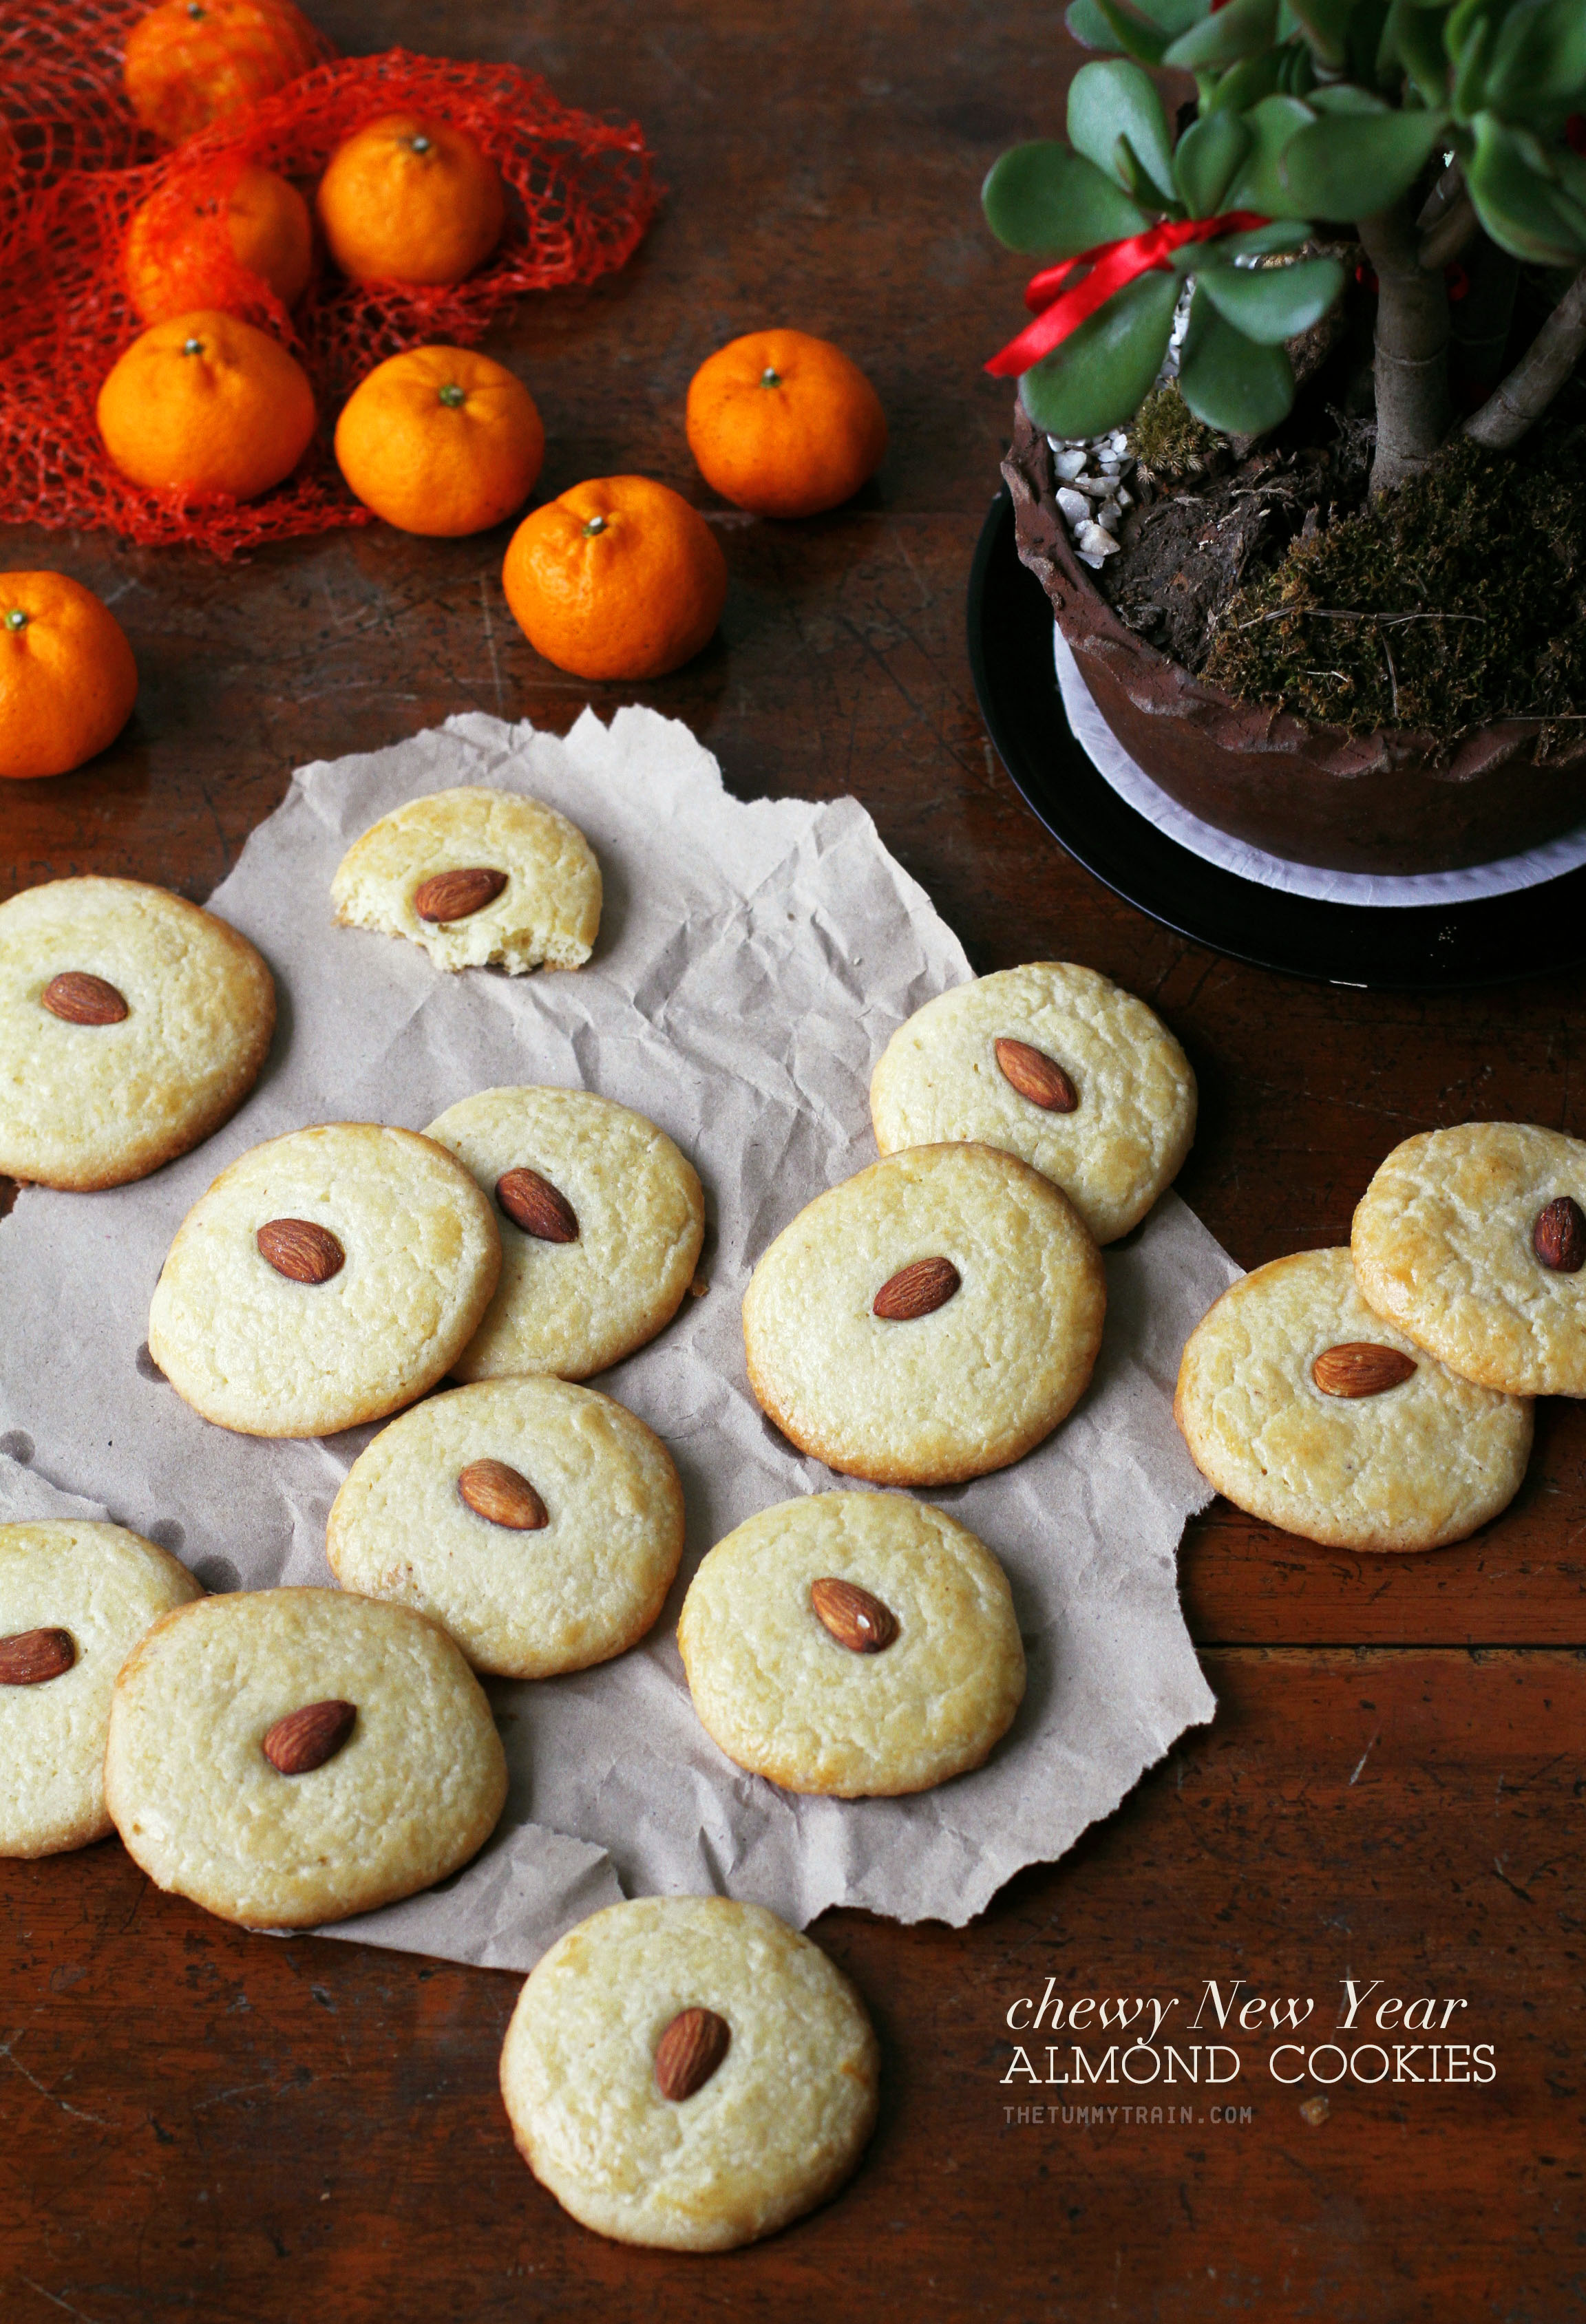 CNY Almond Cookies 1 - Celebrating with these Lunar New Year Almond Cookies